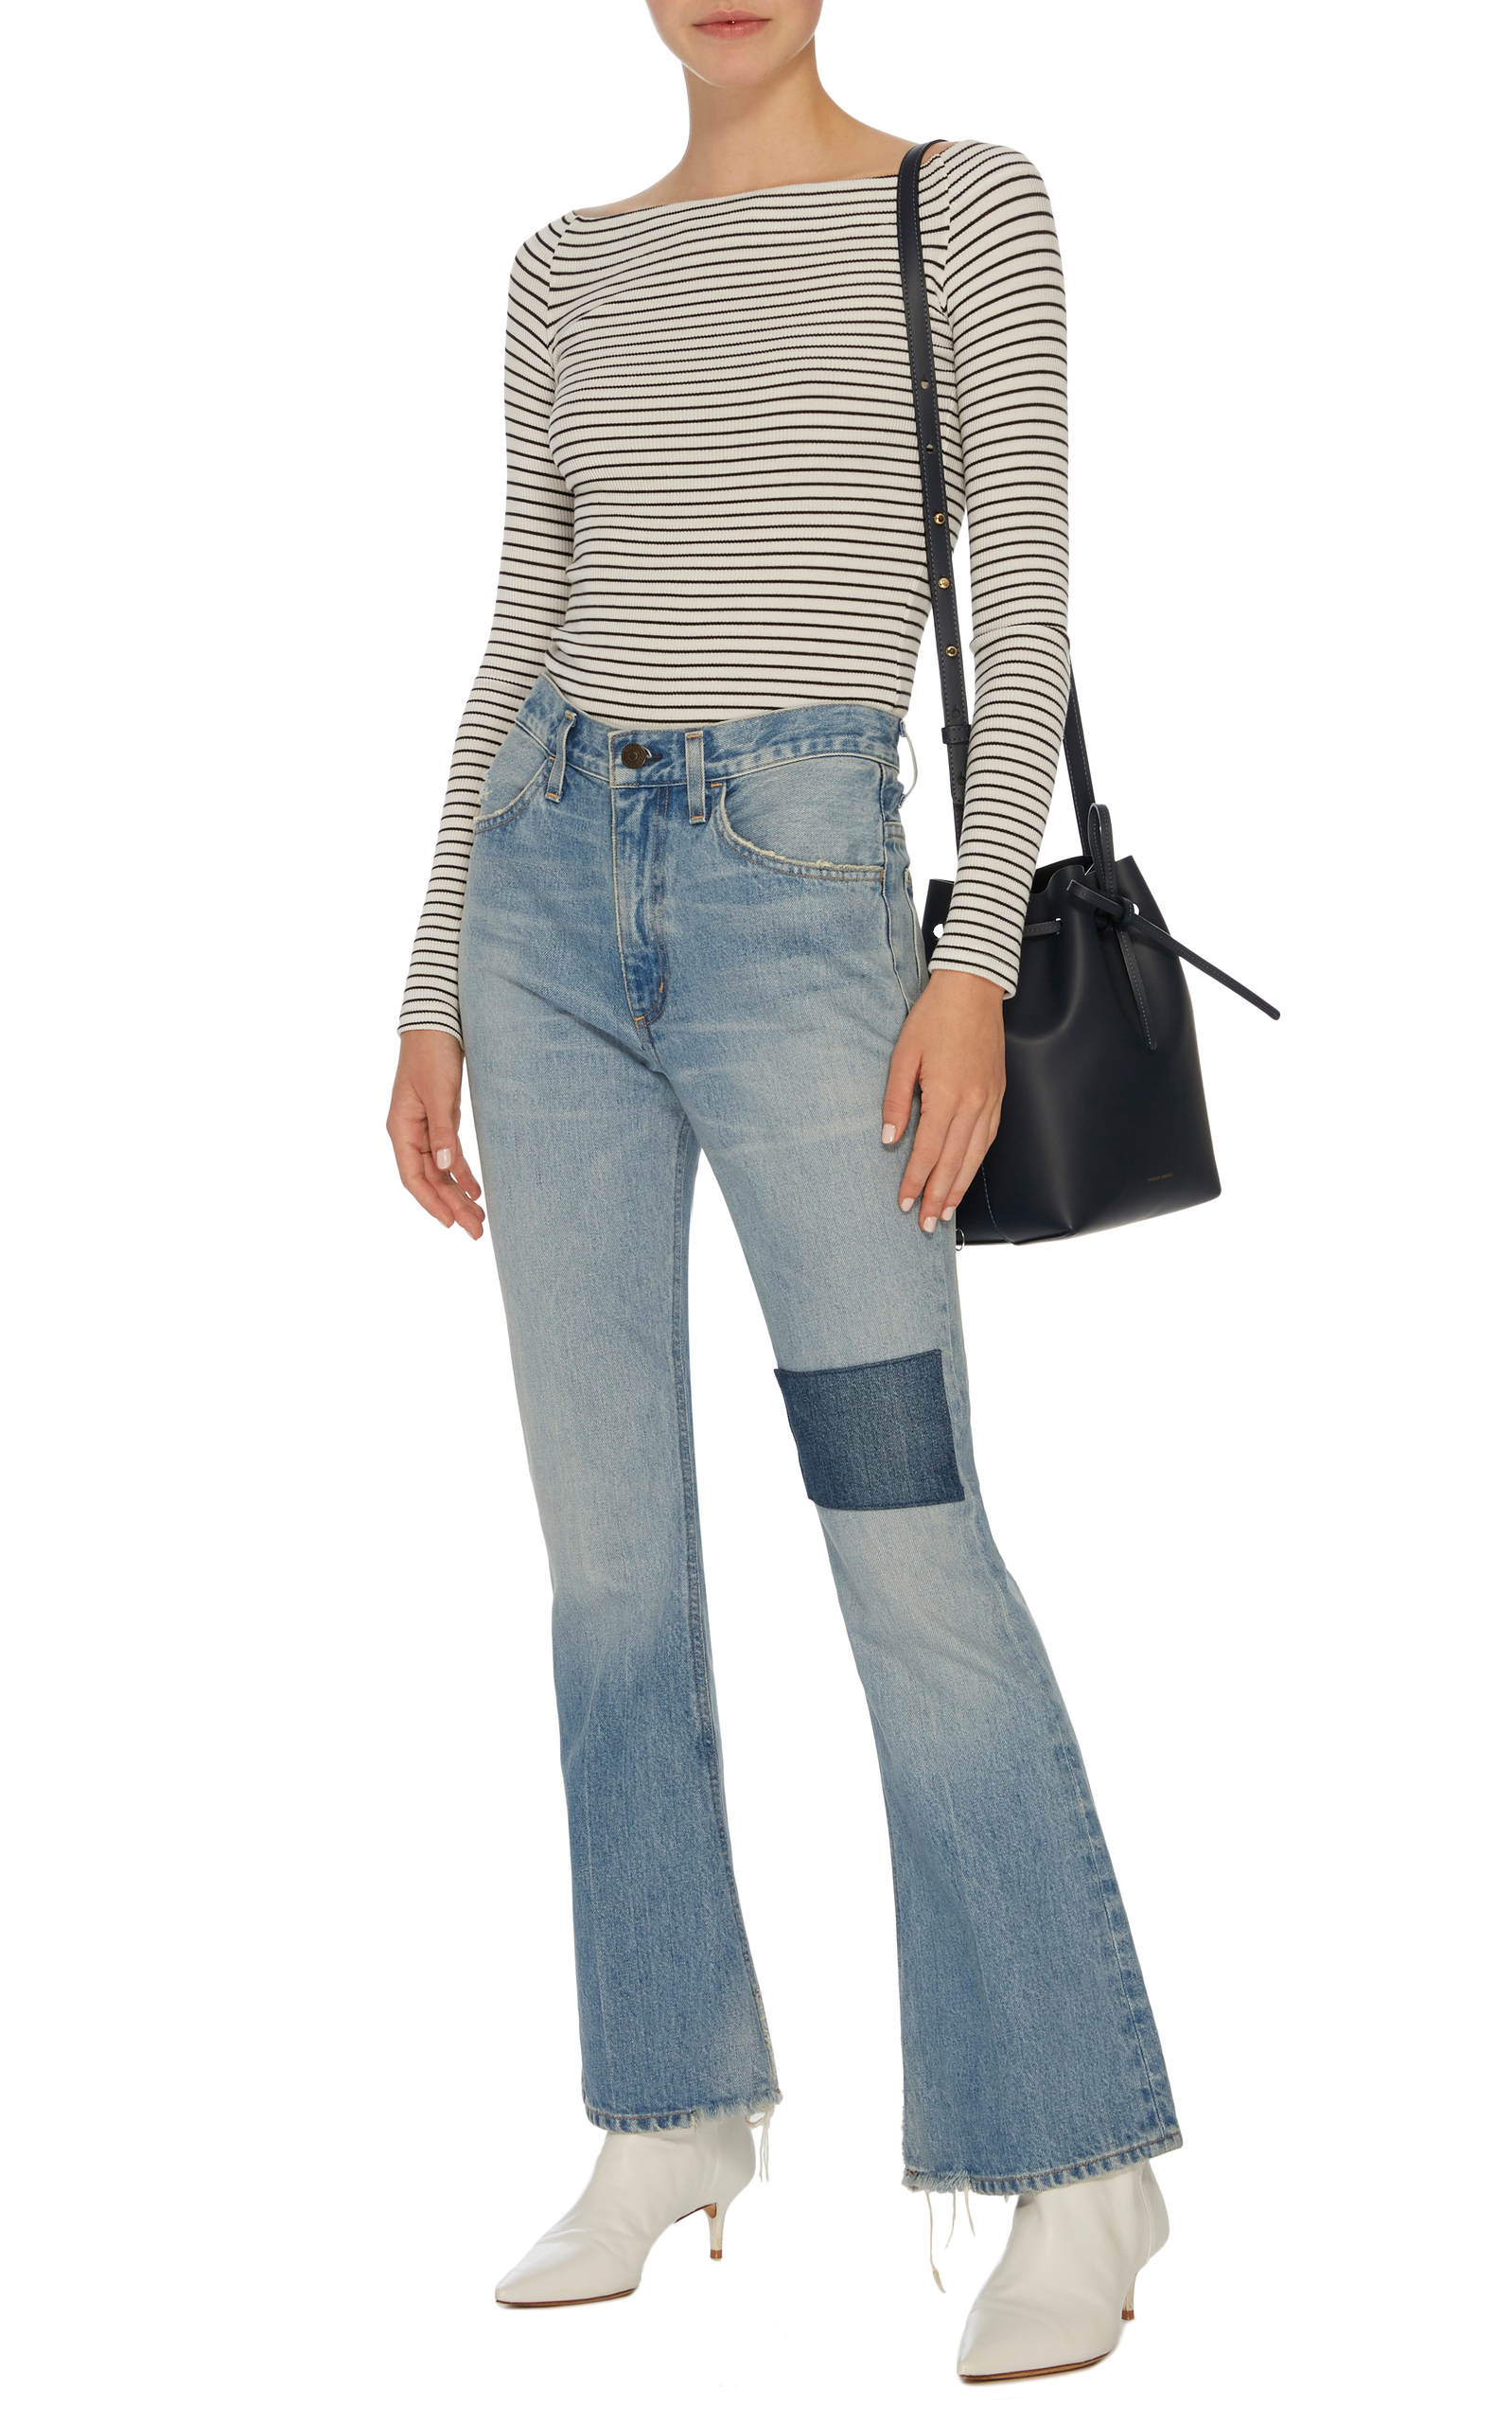 online for sale 60% cheap for whole family Kaya Mid-Rise Kick-Flare Jeans